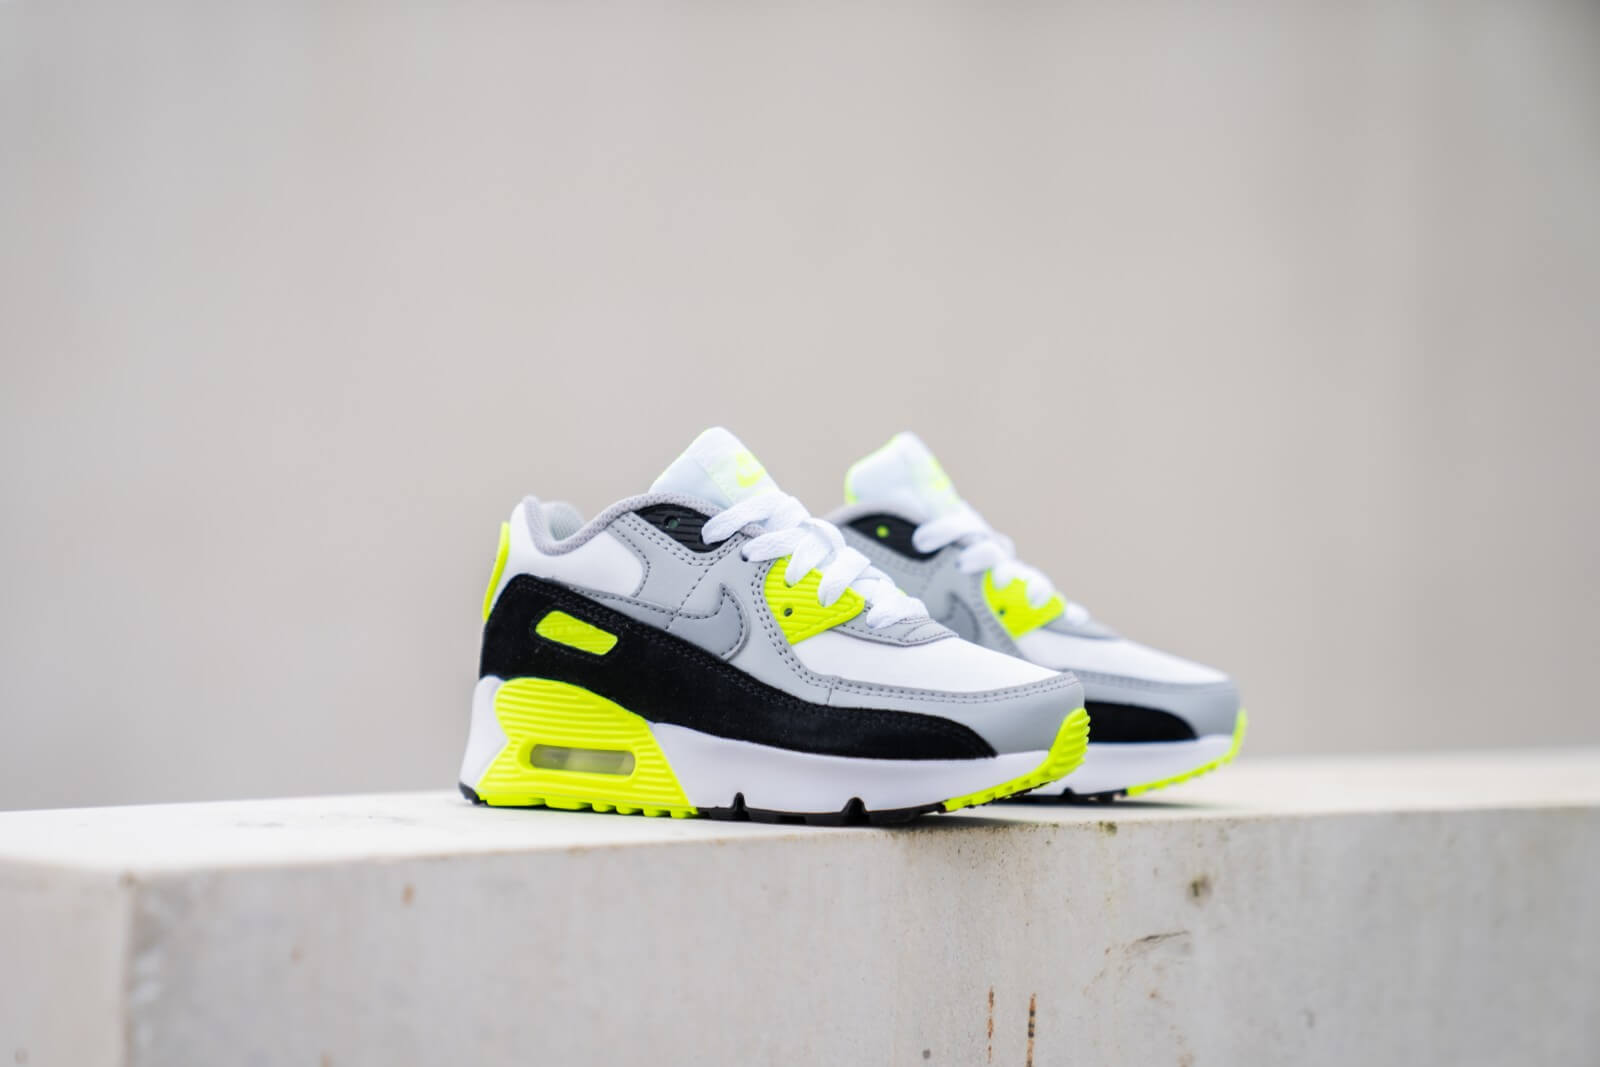 Nike Air Max 90 Ps White Particle Grey Volt Cd6867 101